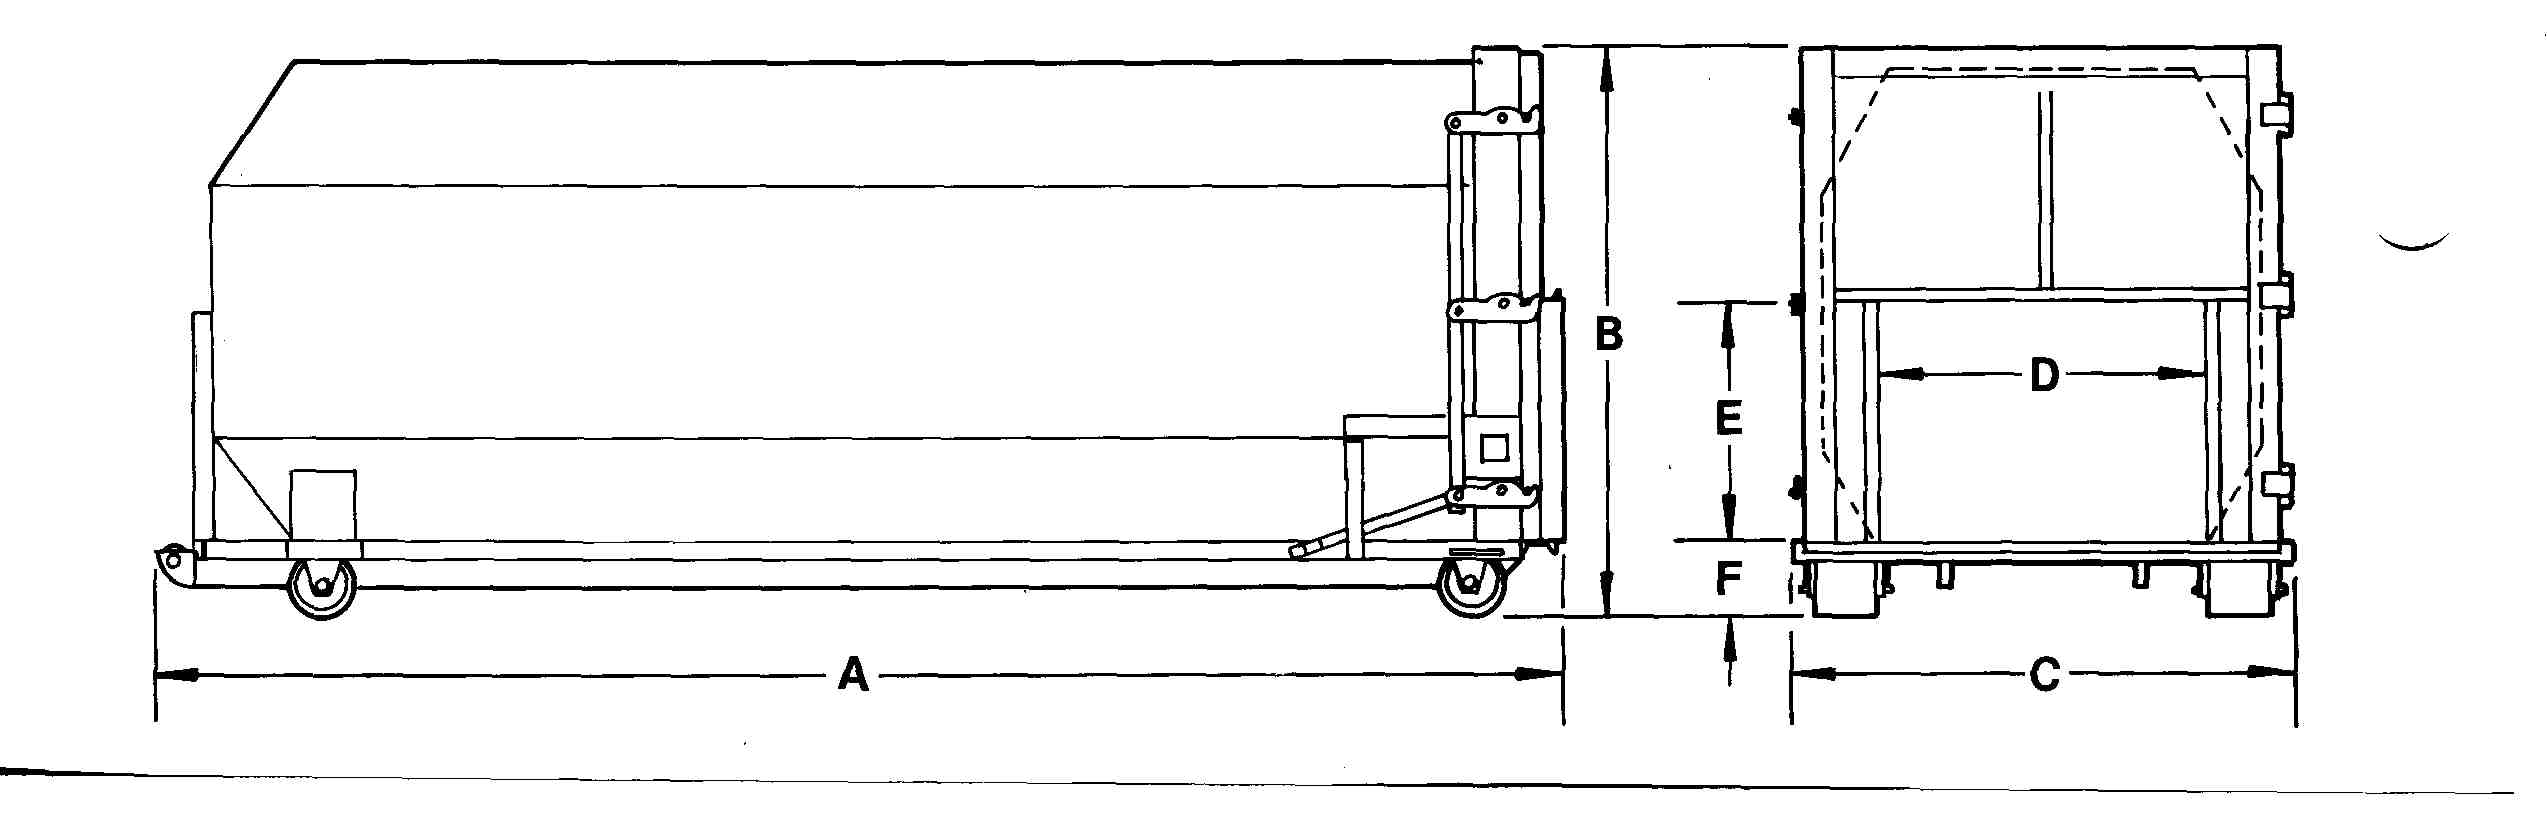 OCTGAON_RECEIVER_DRAWING